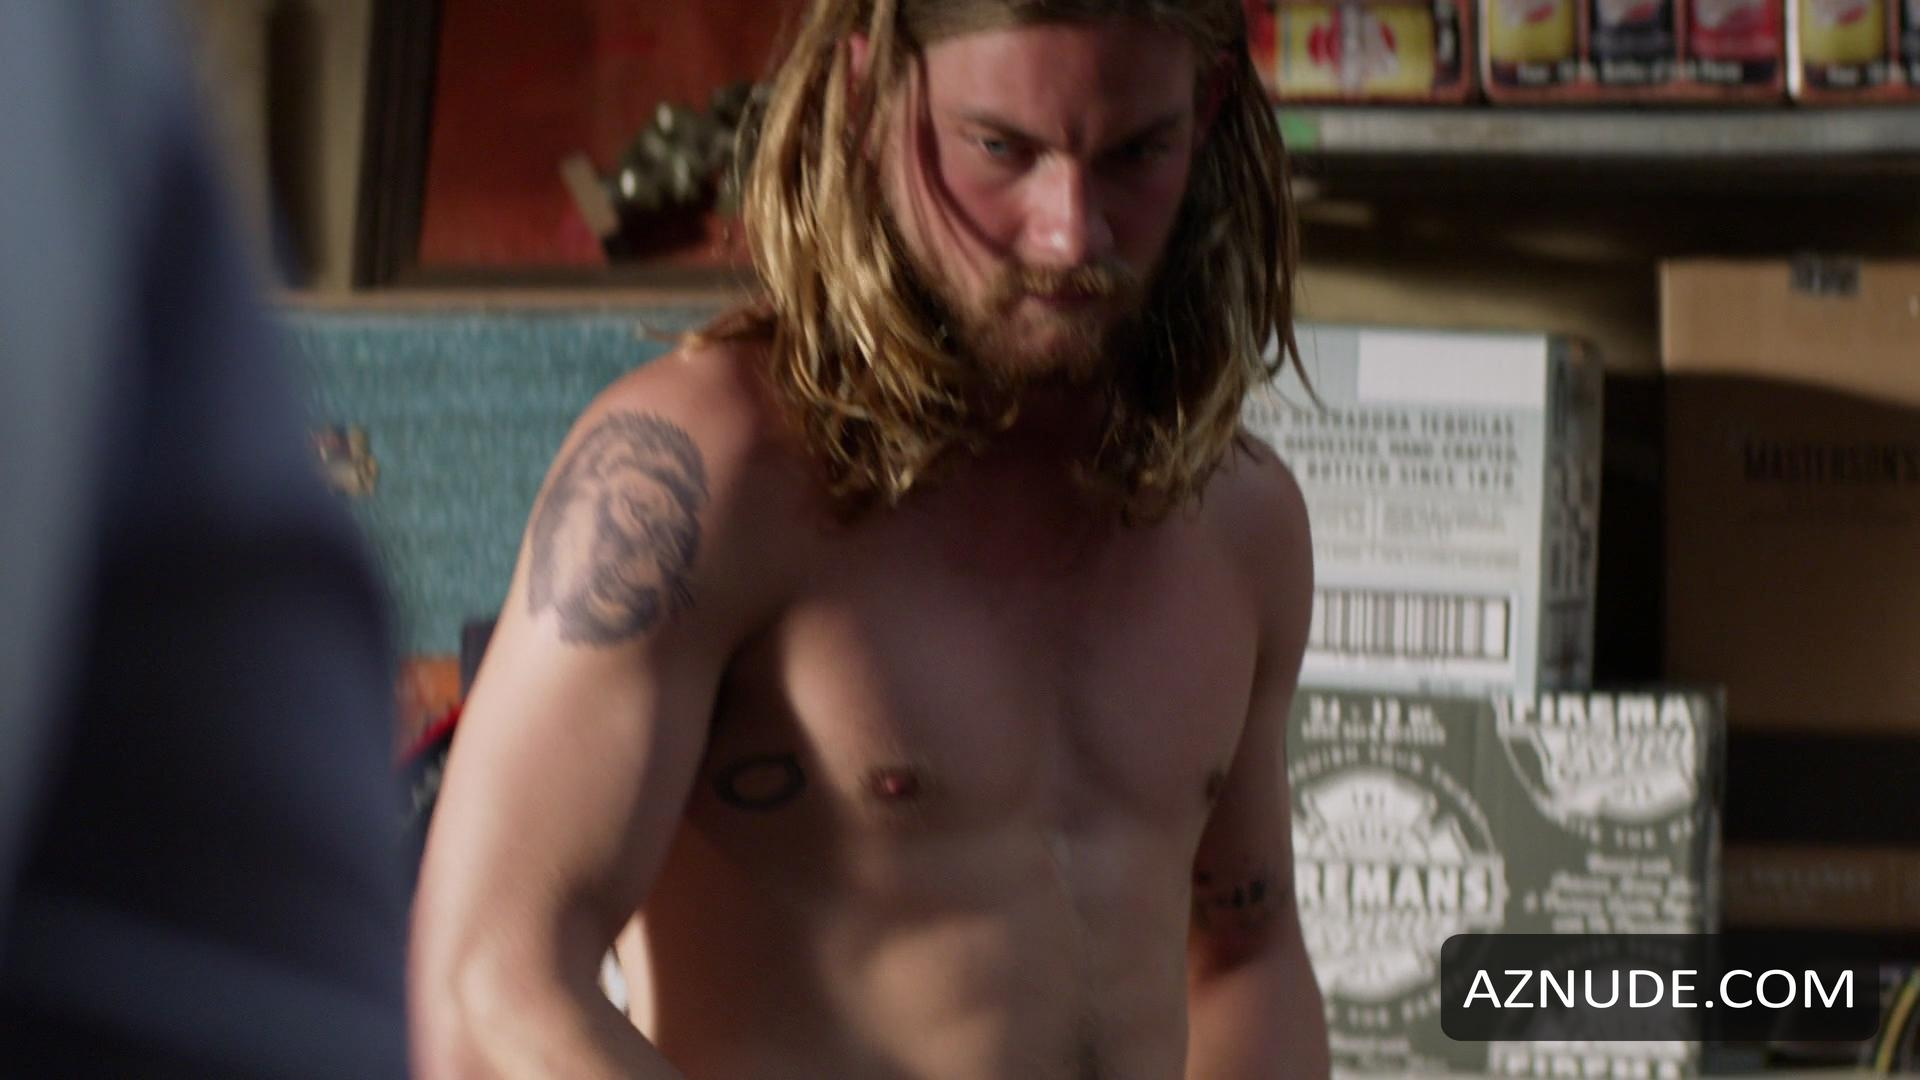 Jake weary dick naked gay the boys are 9